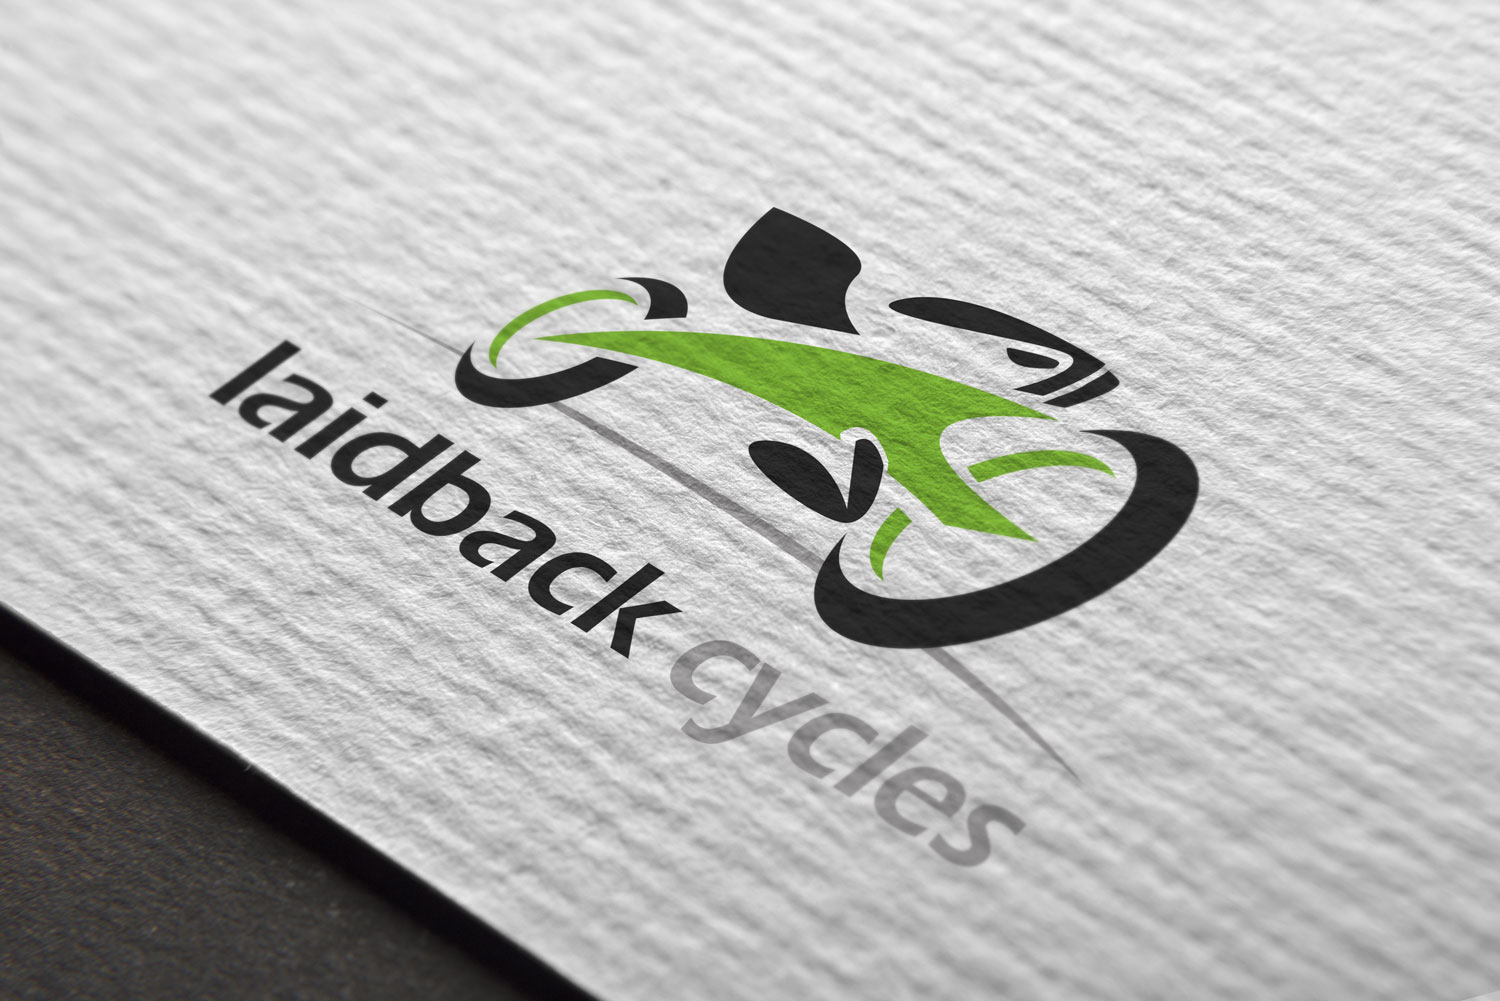 Laidback Cycles